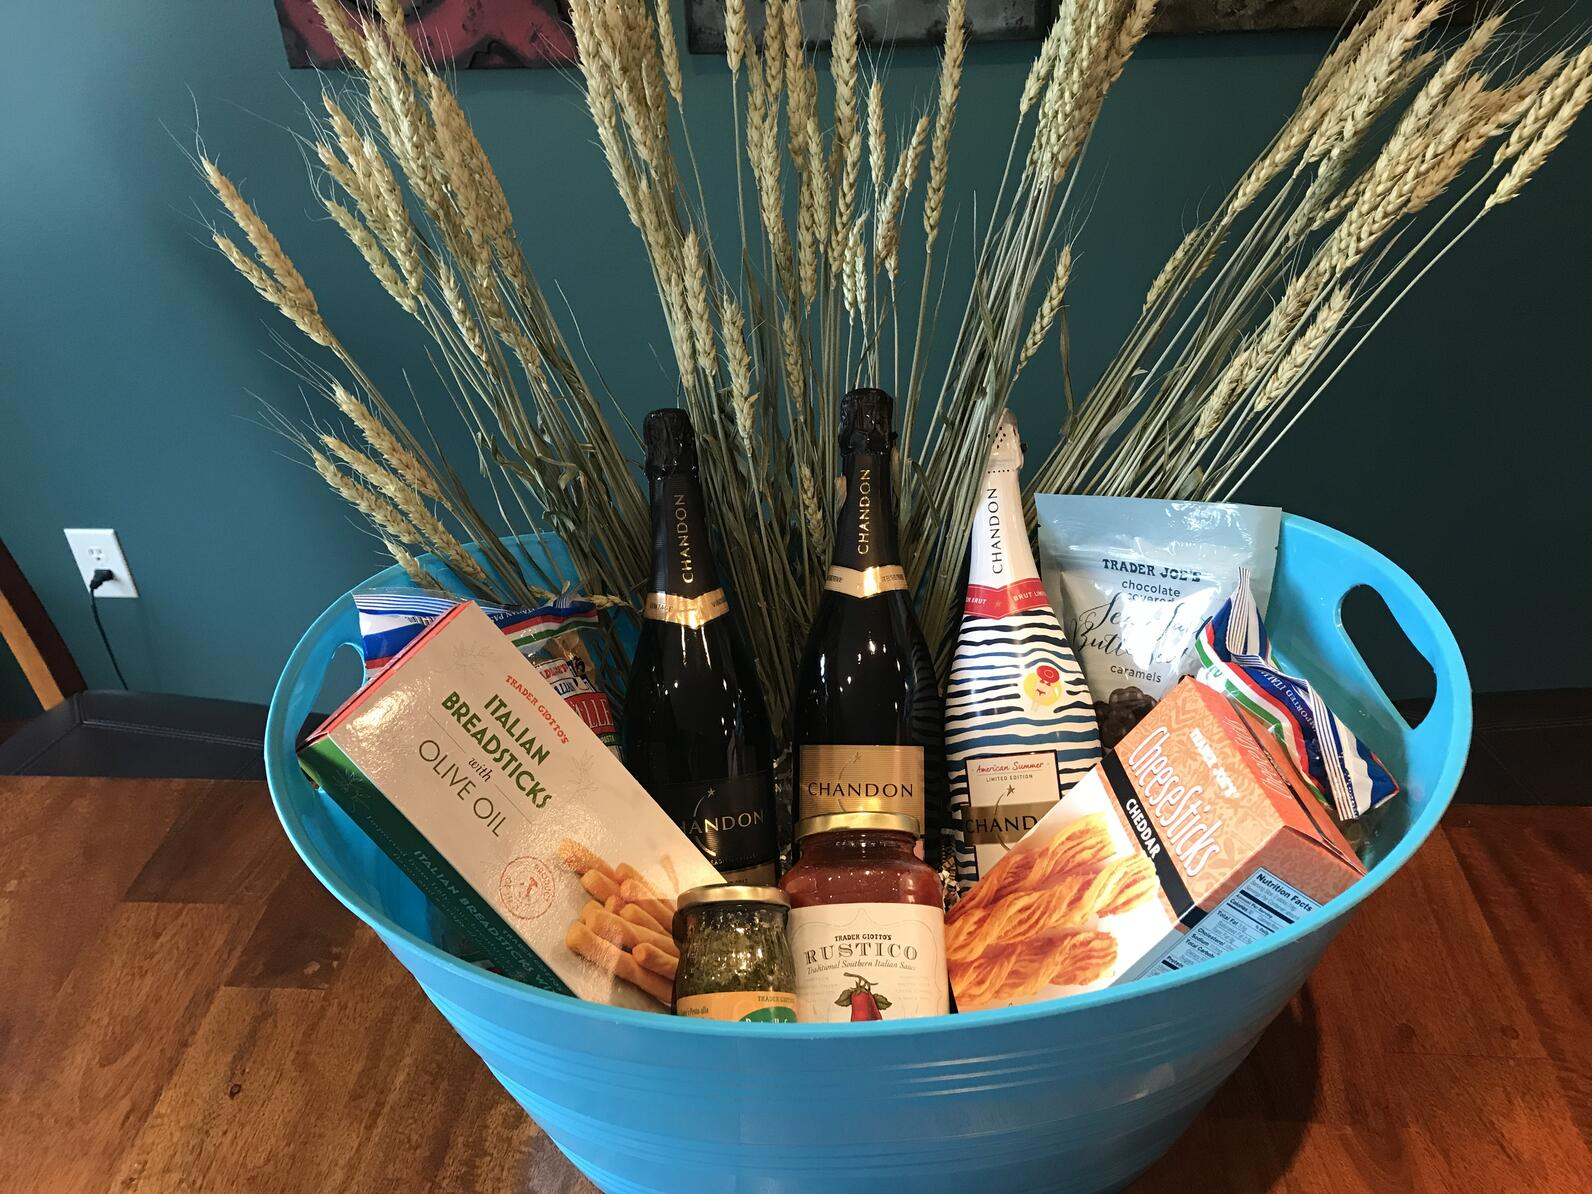 Gift basket of wine and food items